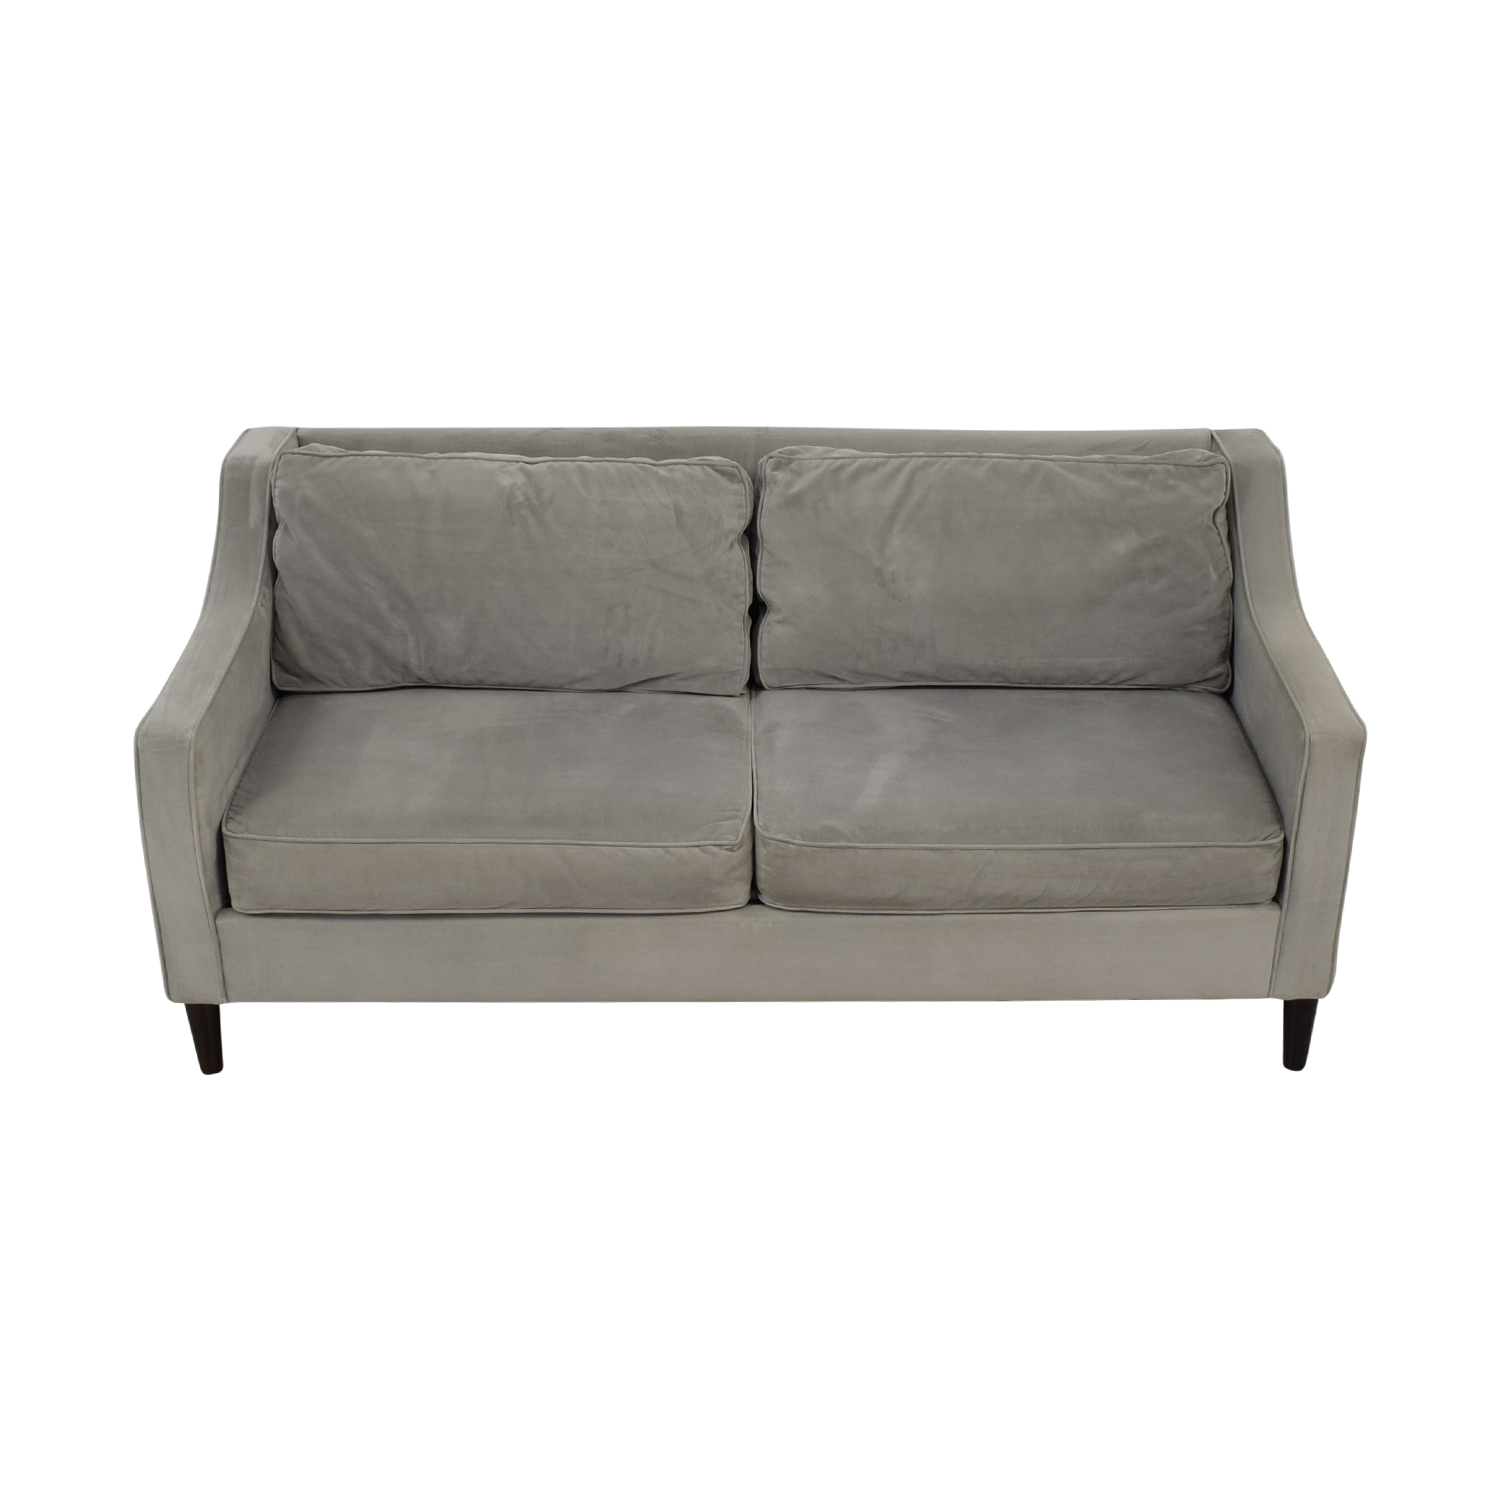 West Elm West Elm Two-Cushion Grey Sofa coupon